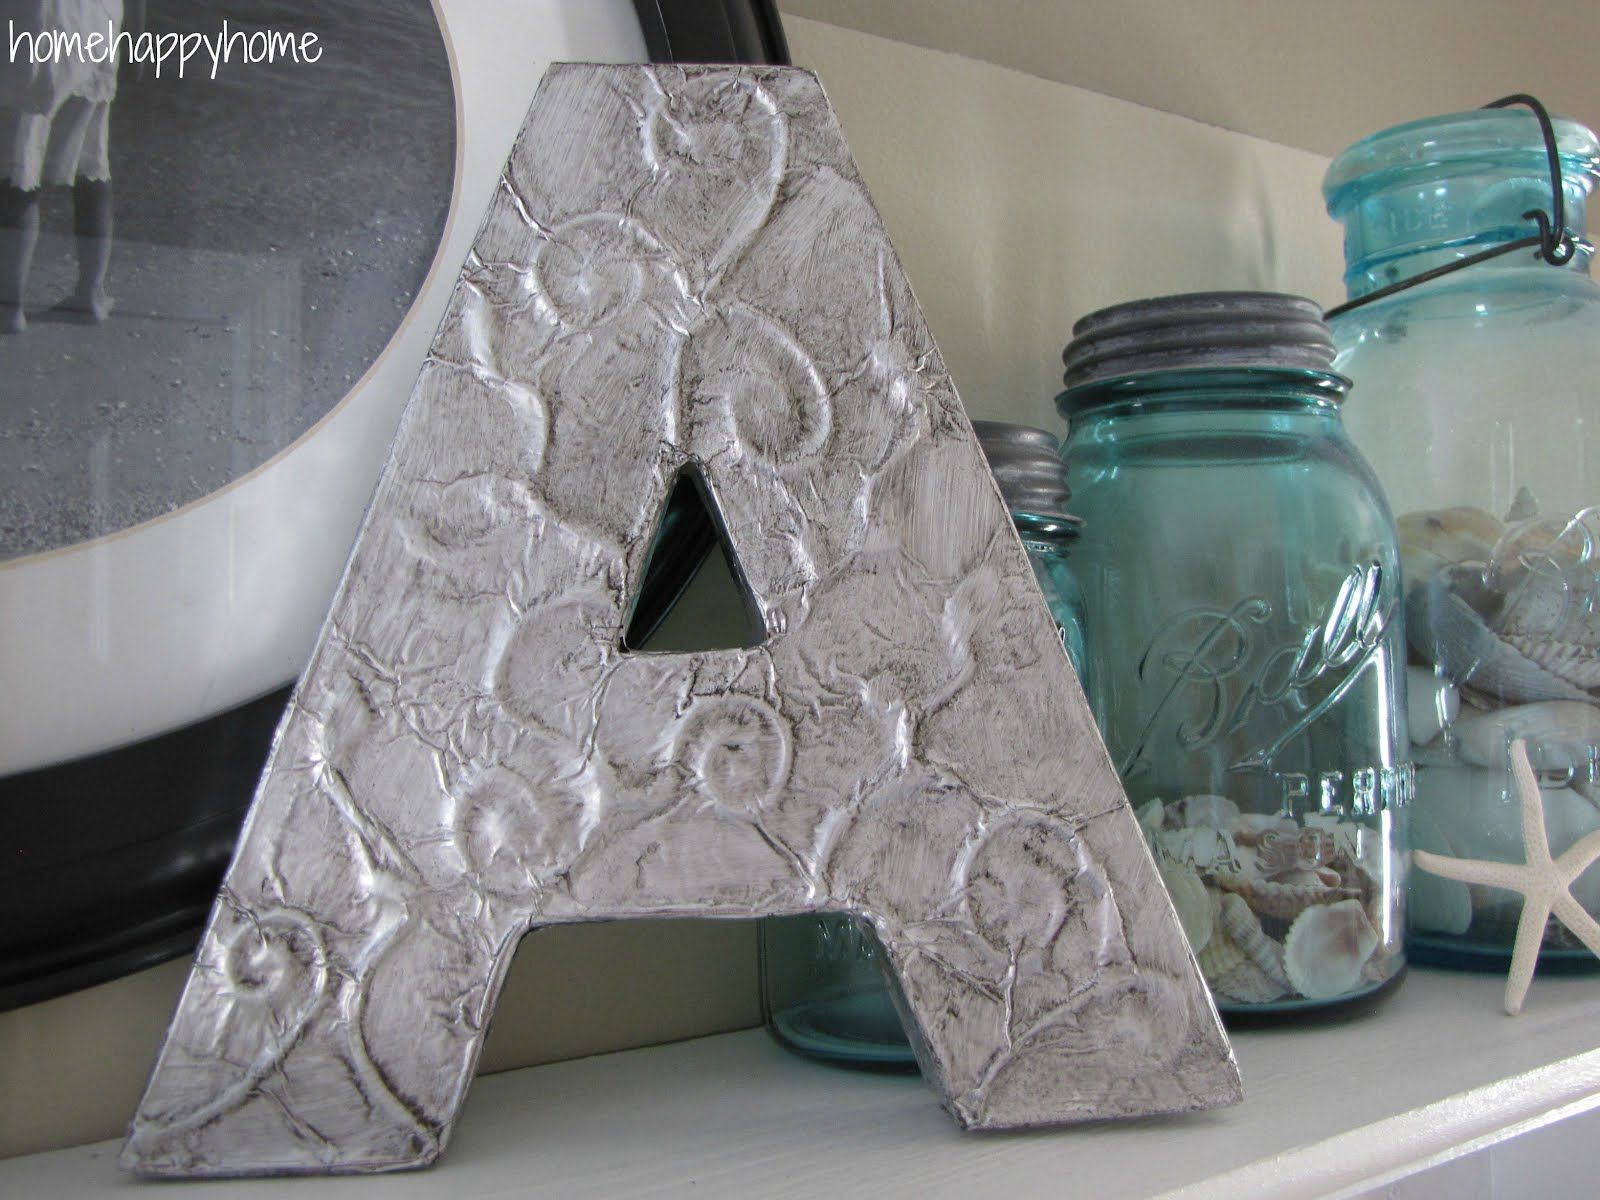 Cute beans. I think I need to do this... home happy home: Foil monogram Pinterest project